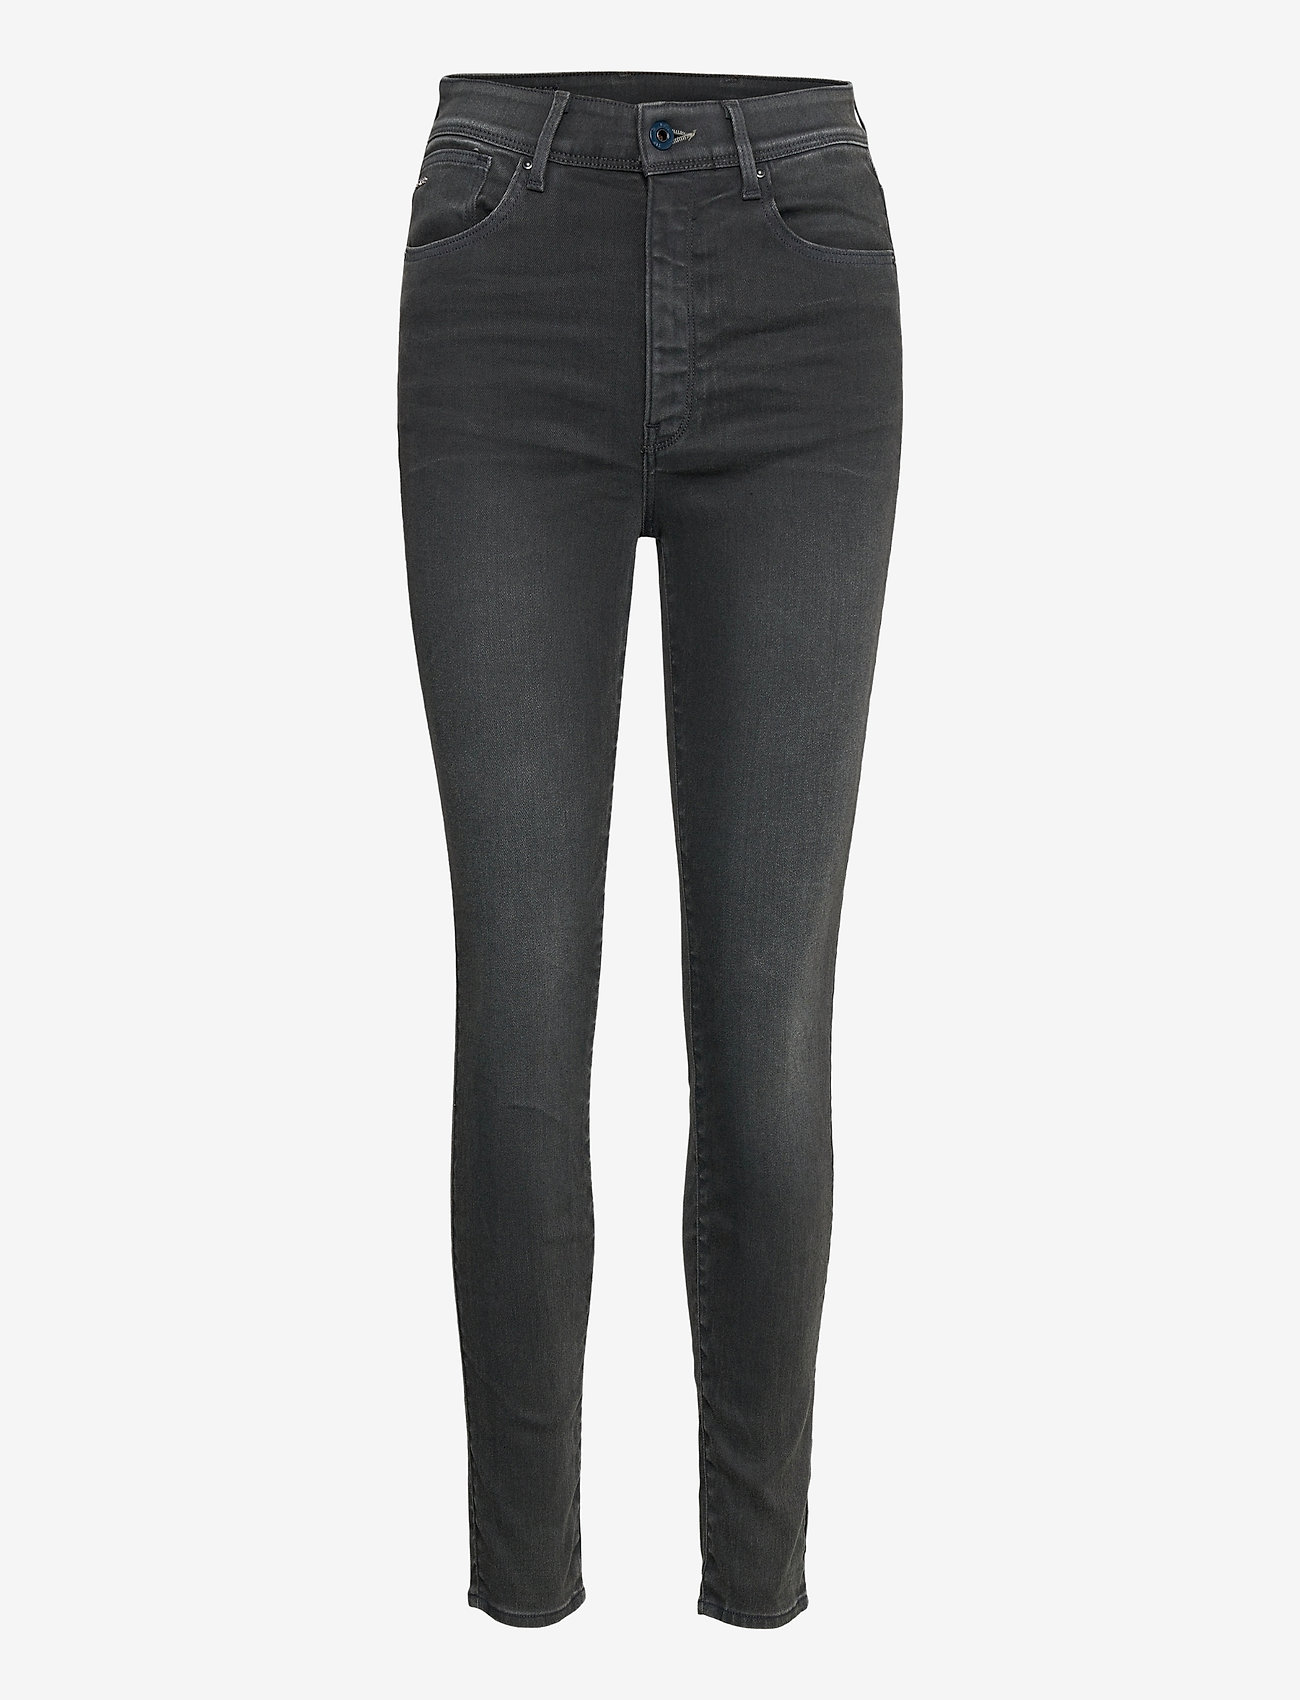 G-star RAW - Kafey Ultra High Skinny Wmn - skinny jeans - axinite cobler - 0